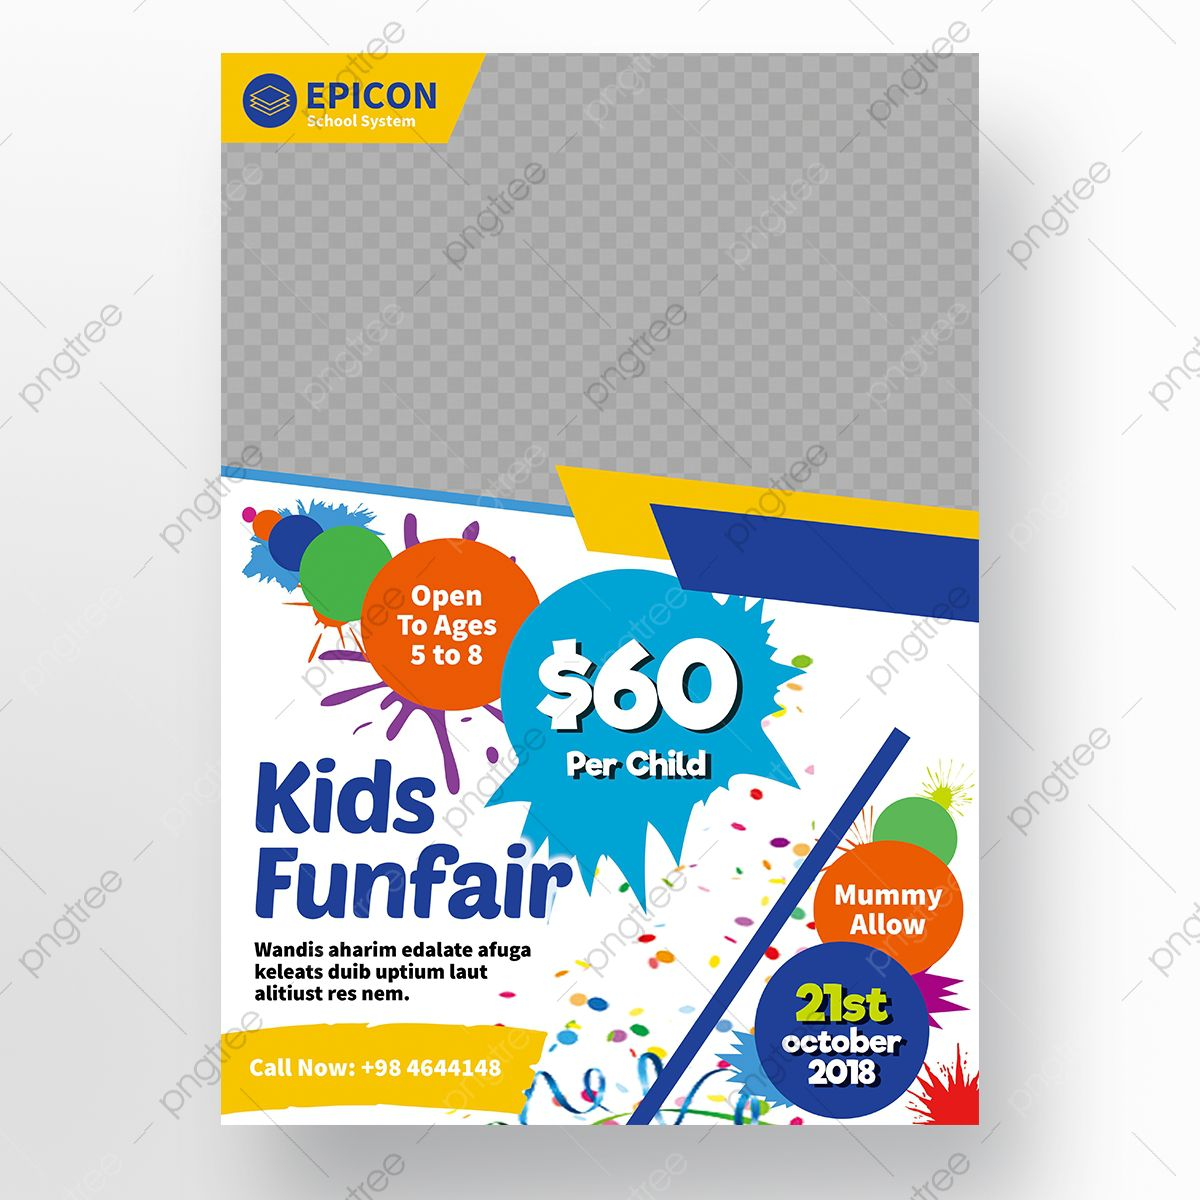 008 Unforgettable Free After School Flyer Template High Definition  TemplatesFull